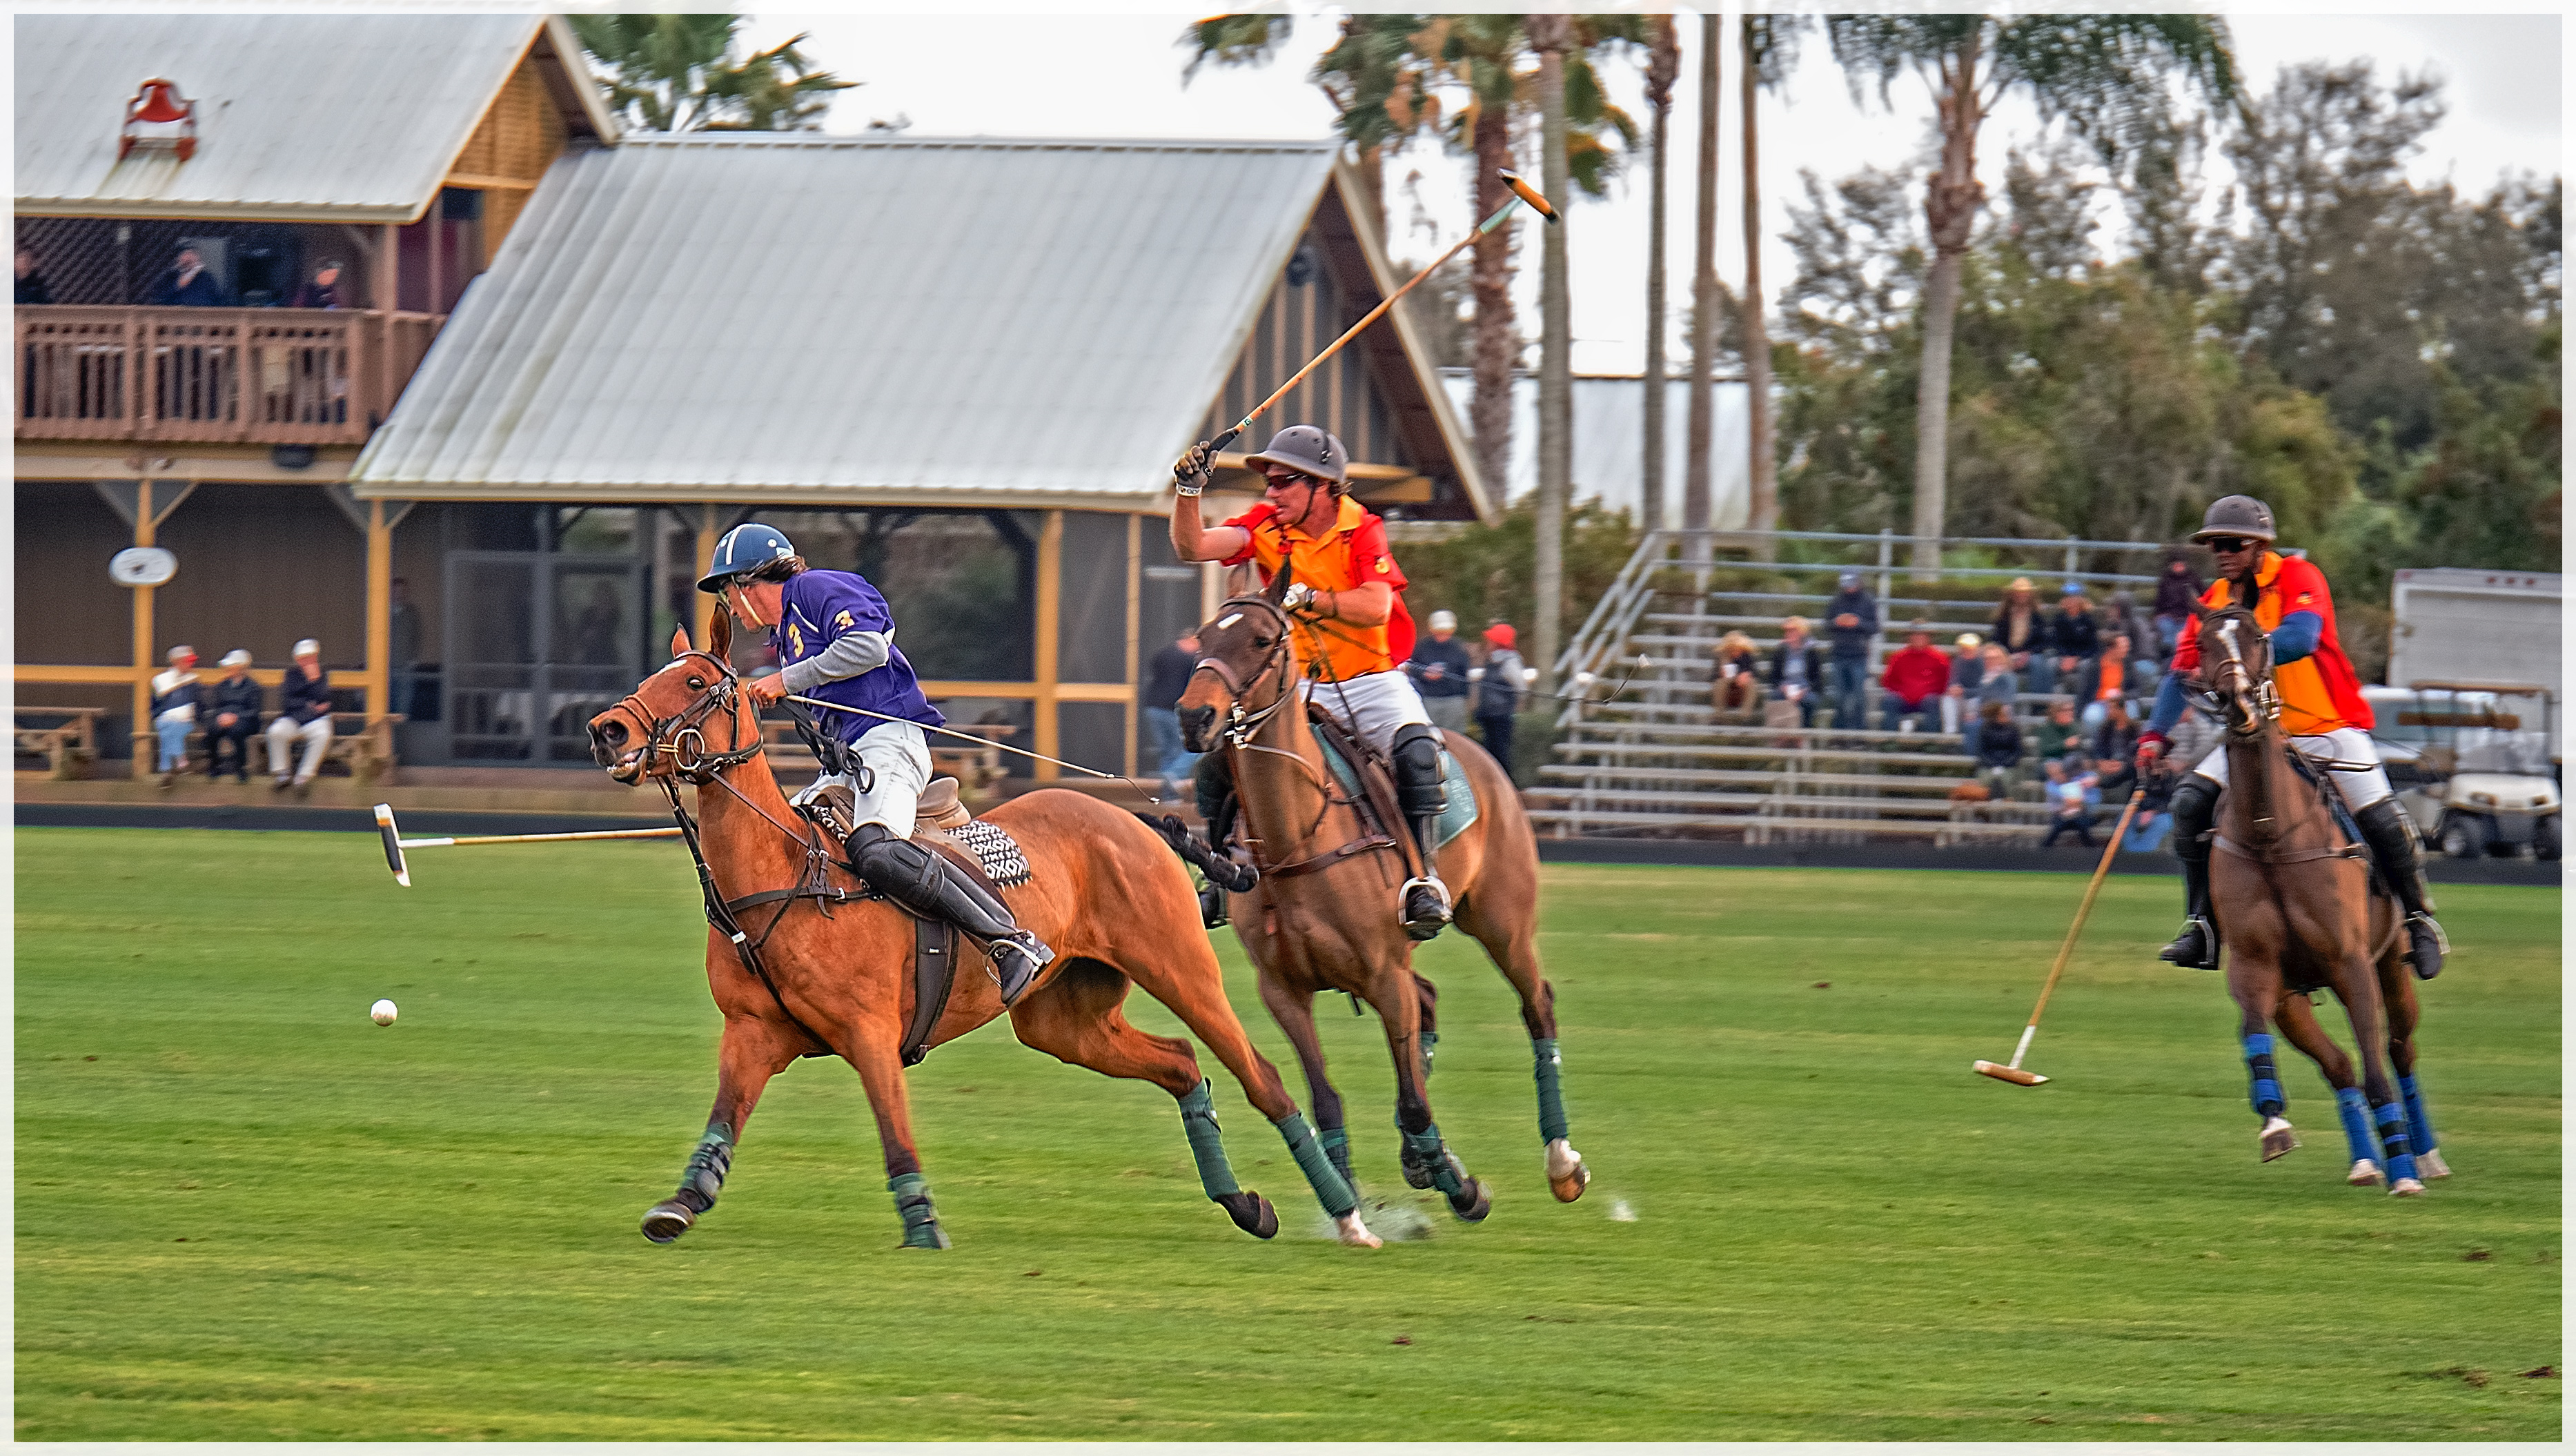 Photoessay: The Sport of Kings